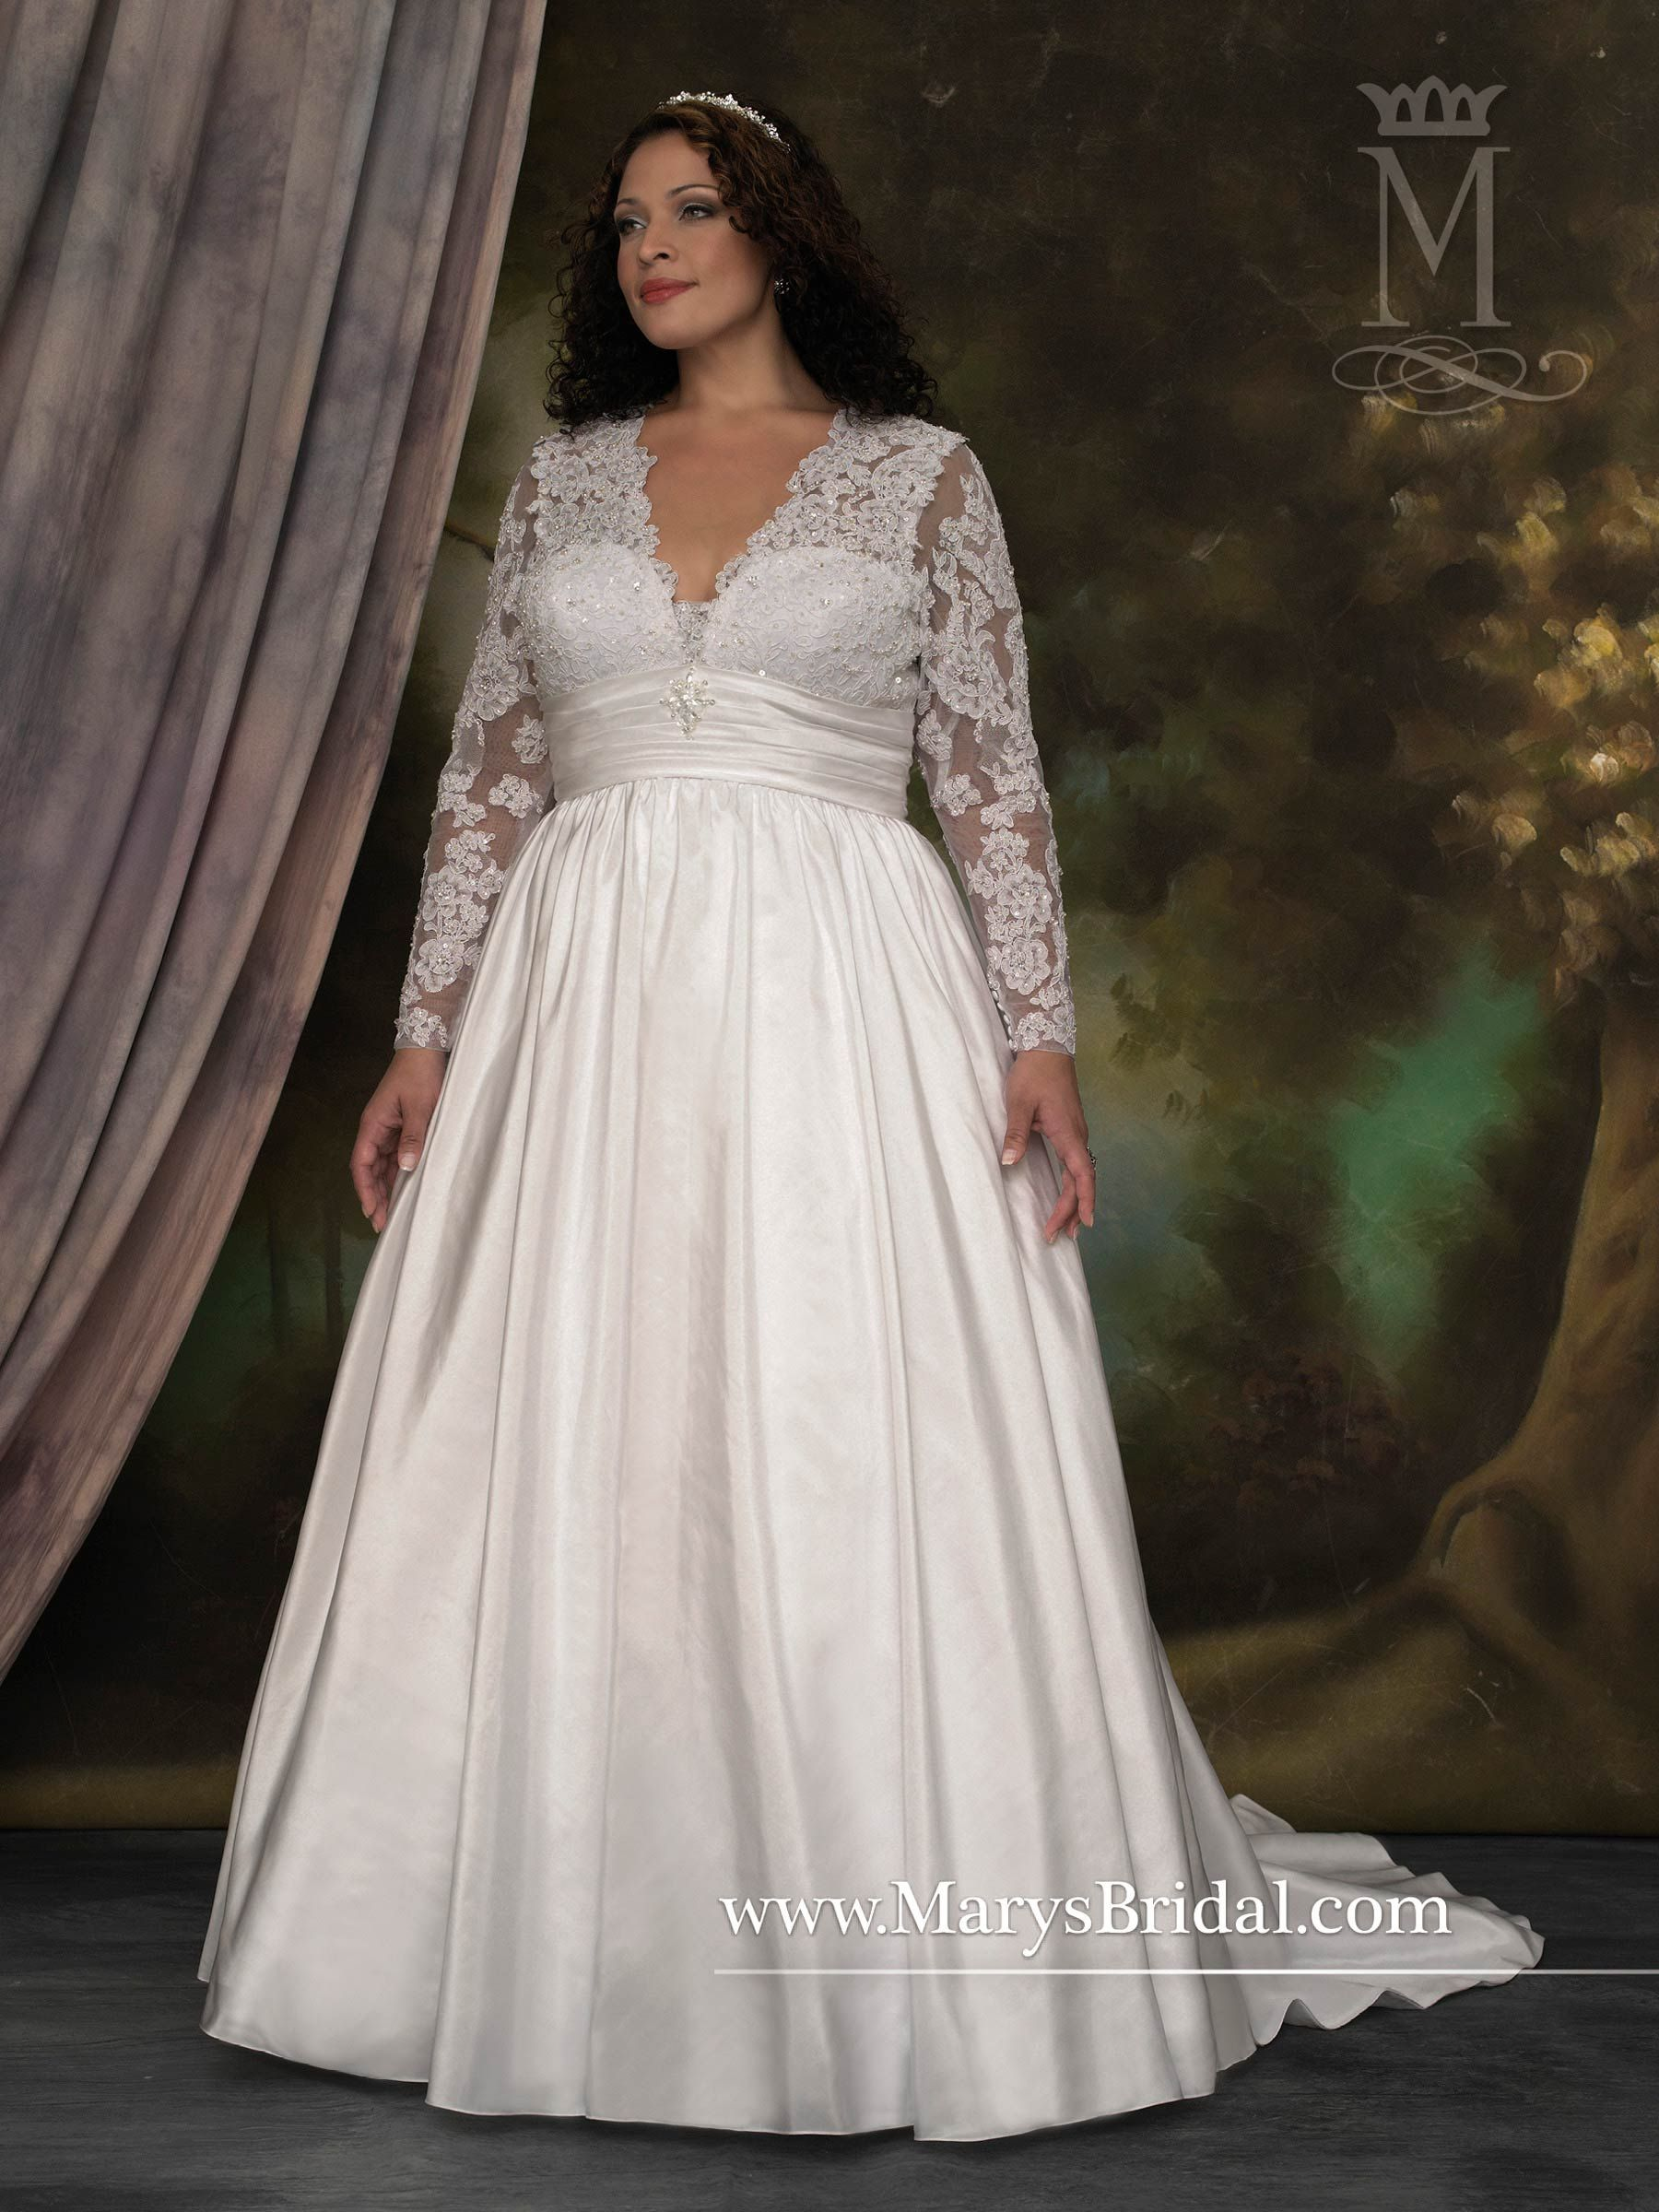 Style 5600 Sleeves Of All Types Are Very Popular For The Bride To Be Who Prefers A Litt Pregnant Wedding Dress Satin Bridal Gowns Elegant Wedding Dresses Lace [ 2400 x 1800 Pixel ]